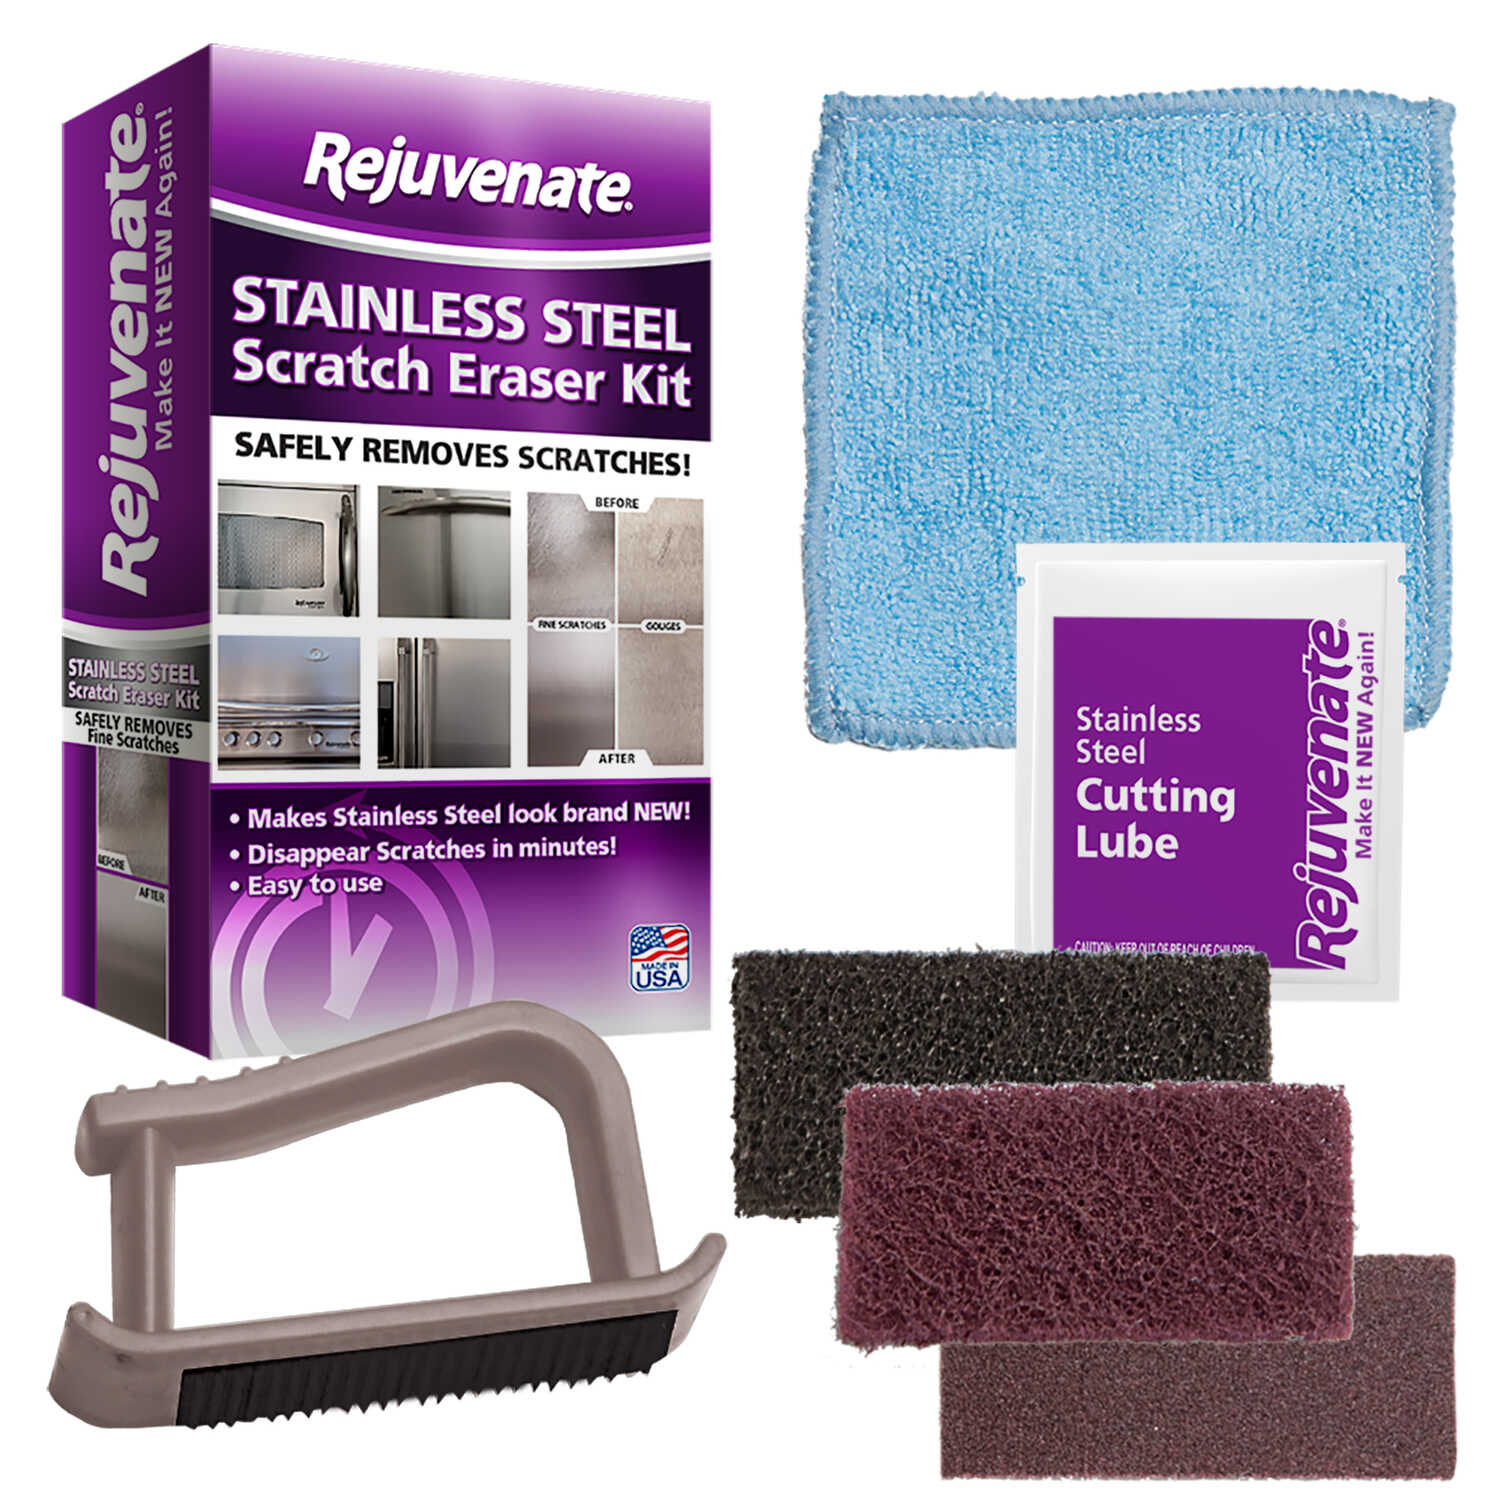 Rejuvenate Stainless Steel Scratch Eraser Kit - Ace Hardware